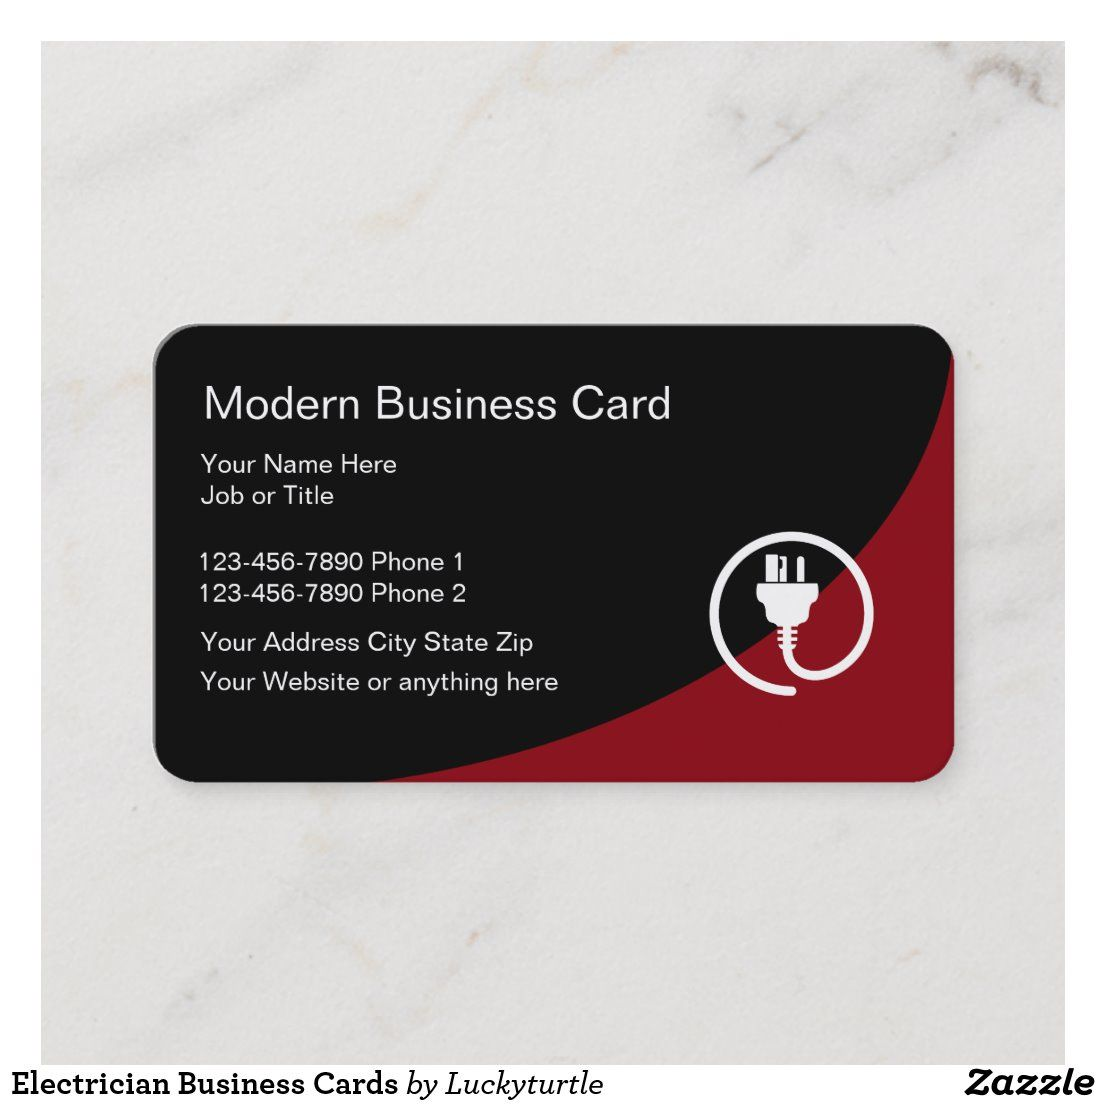 Electrician Business Cards Zazzle Com In 2021 Modern Business Cards Business Card Template Electrician